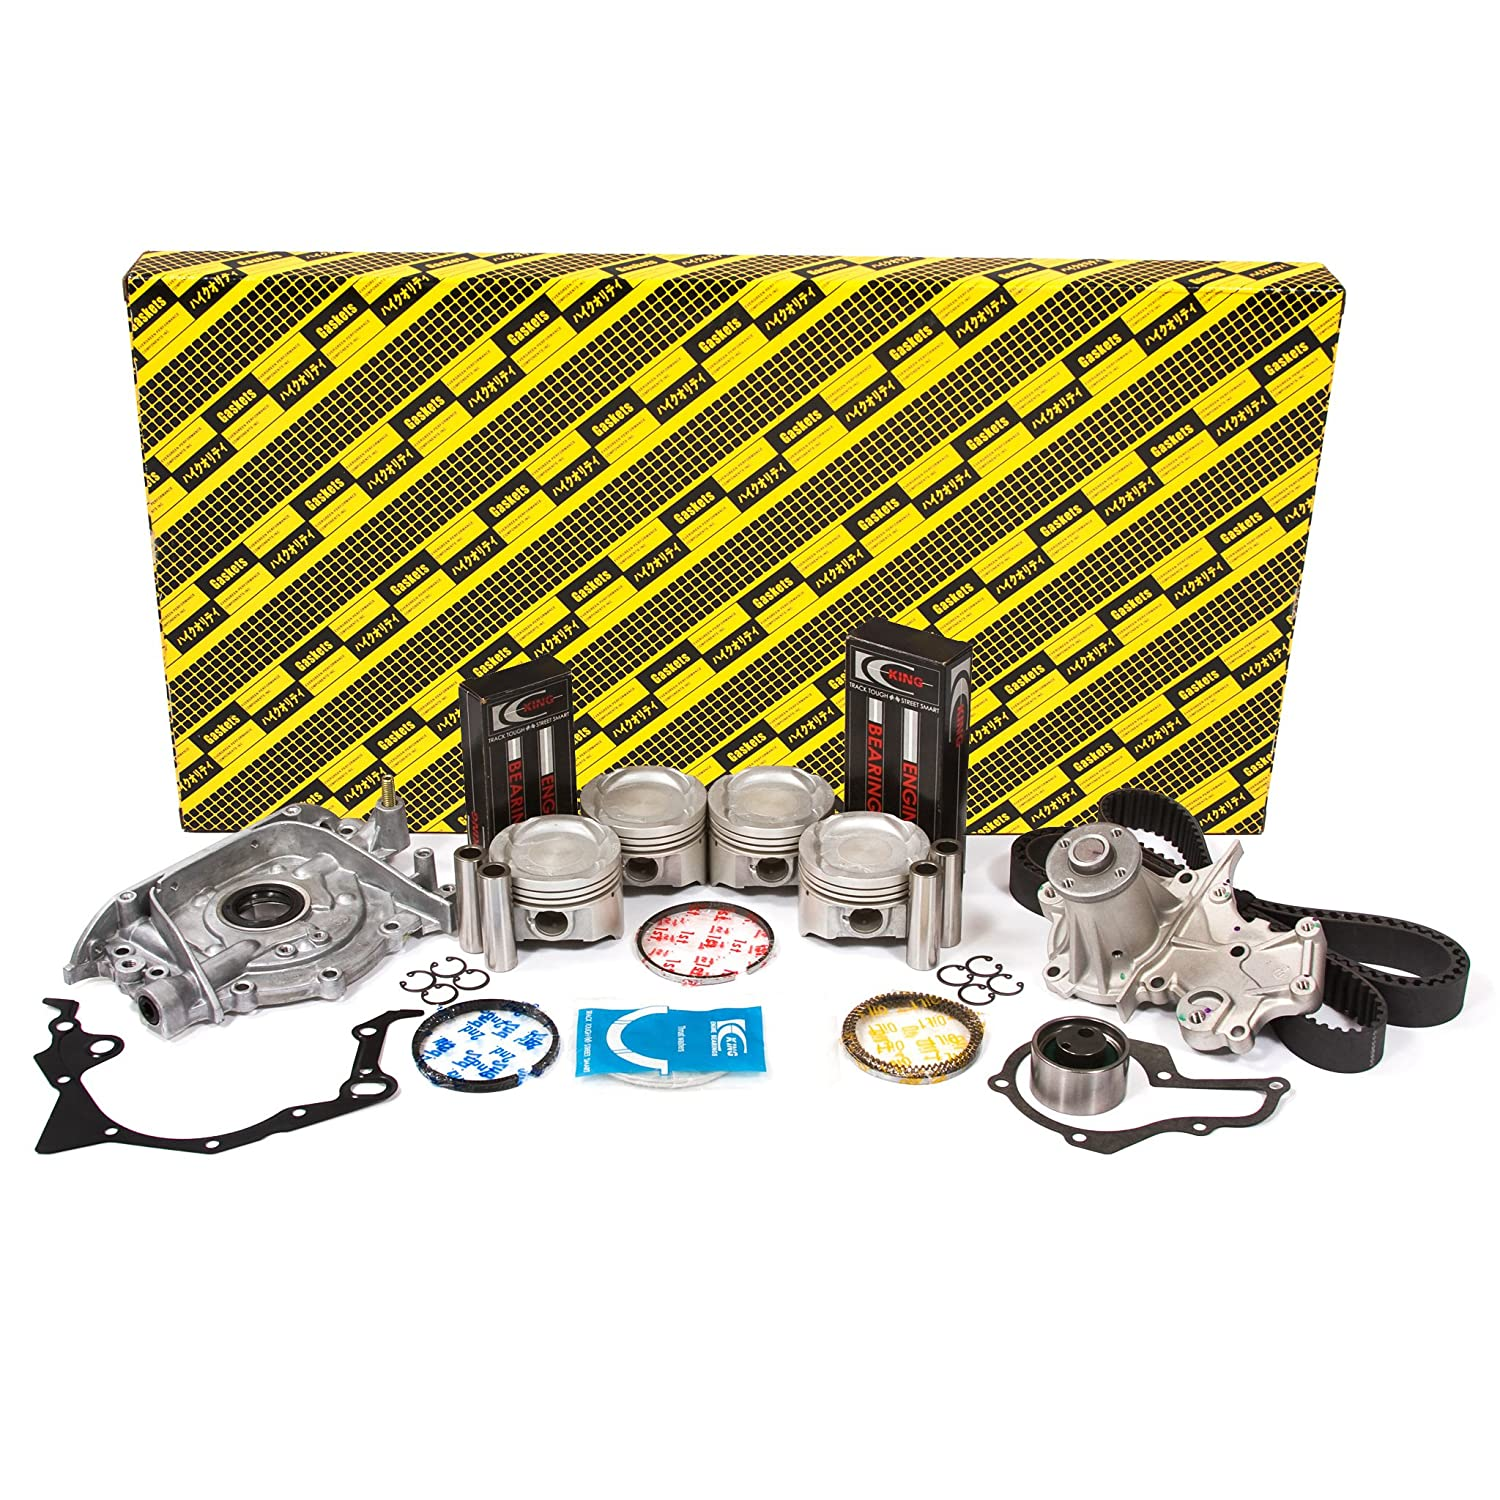 Evergreen Ok8008a 0 2 92 95 Suzuki Sidekick 16l Sohc 1990 Engine Oil 16v G16kv Rebuild Kit Automotive